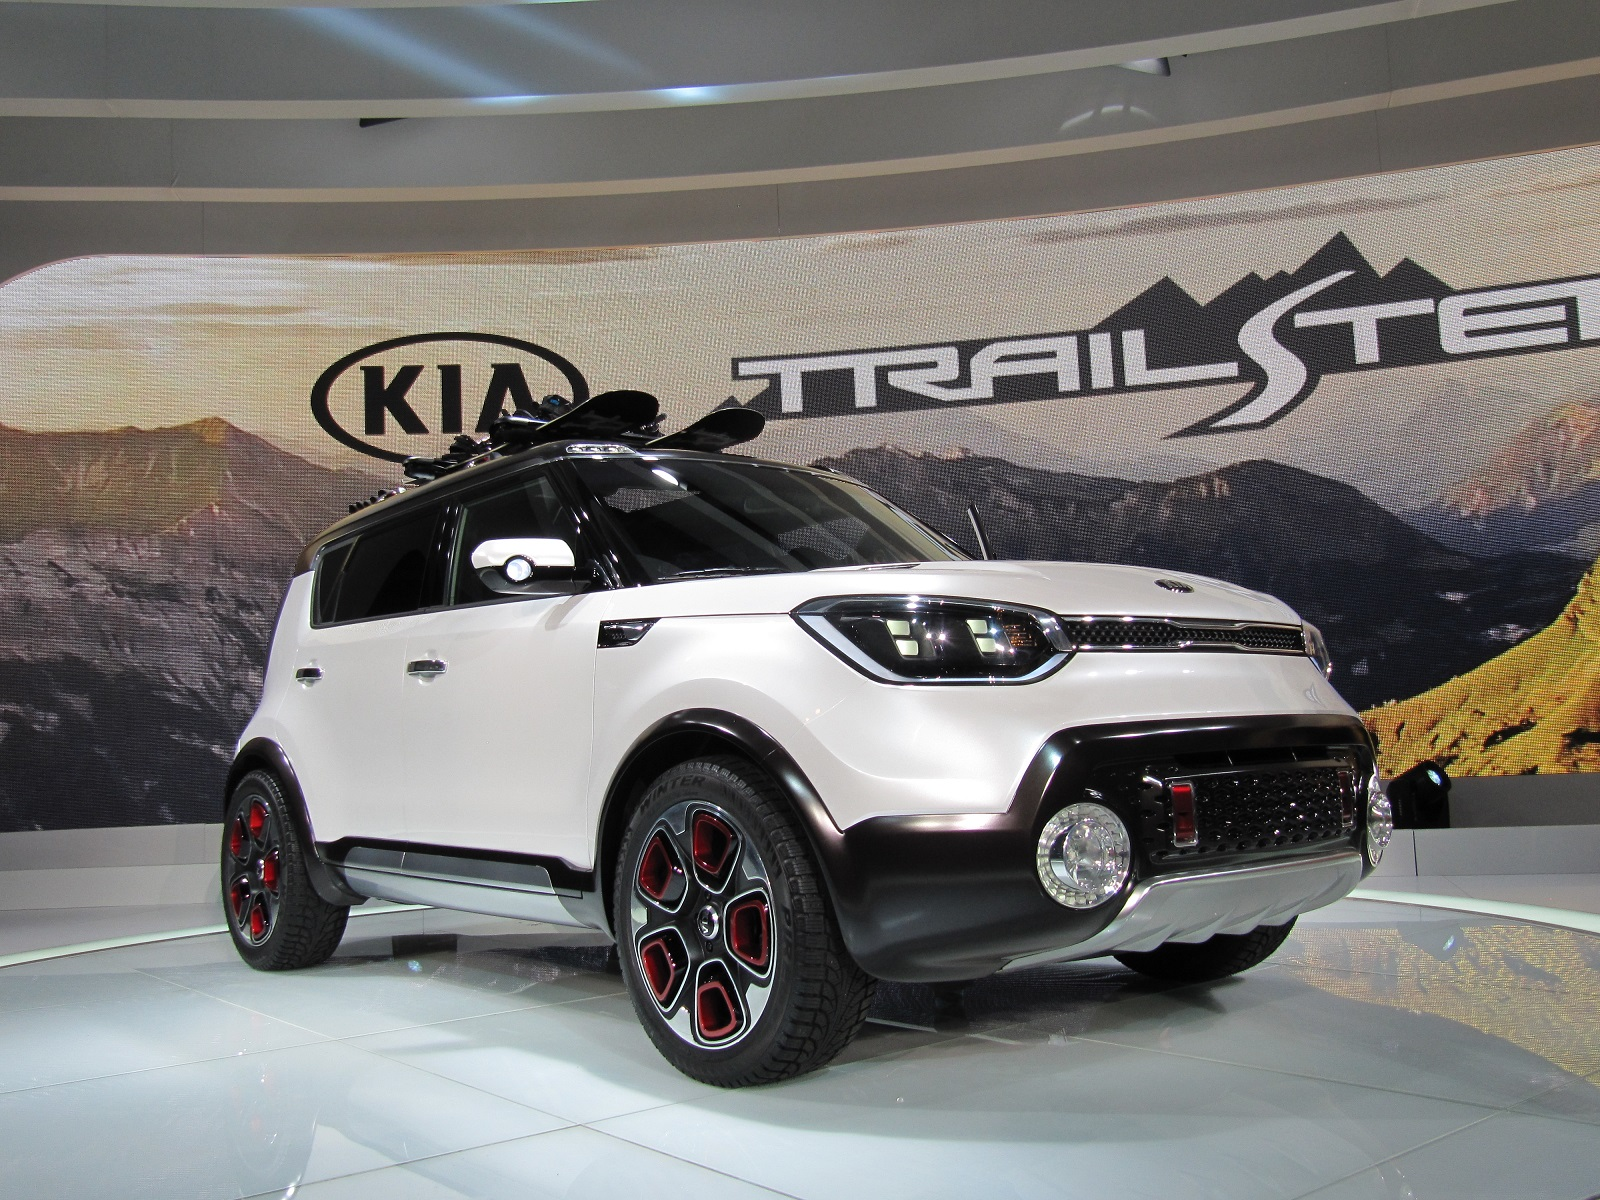 Kia Soul Based Trail Ster Concept Features Electric Awd Live Photos From Chicago Auto Show